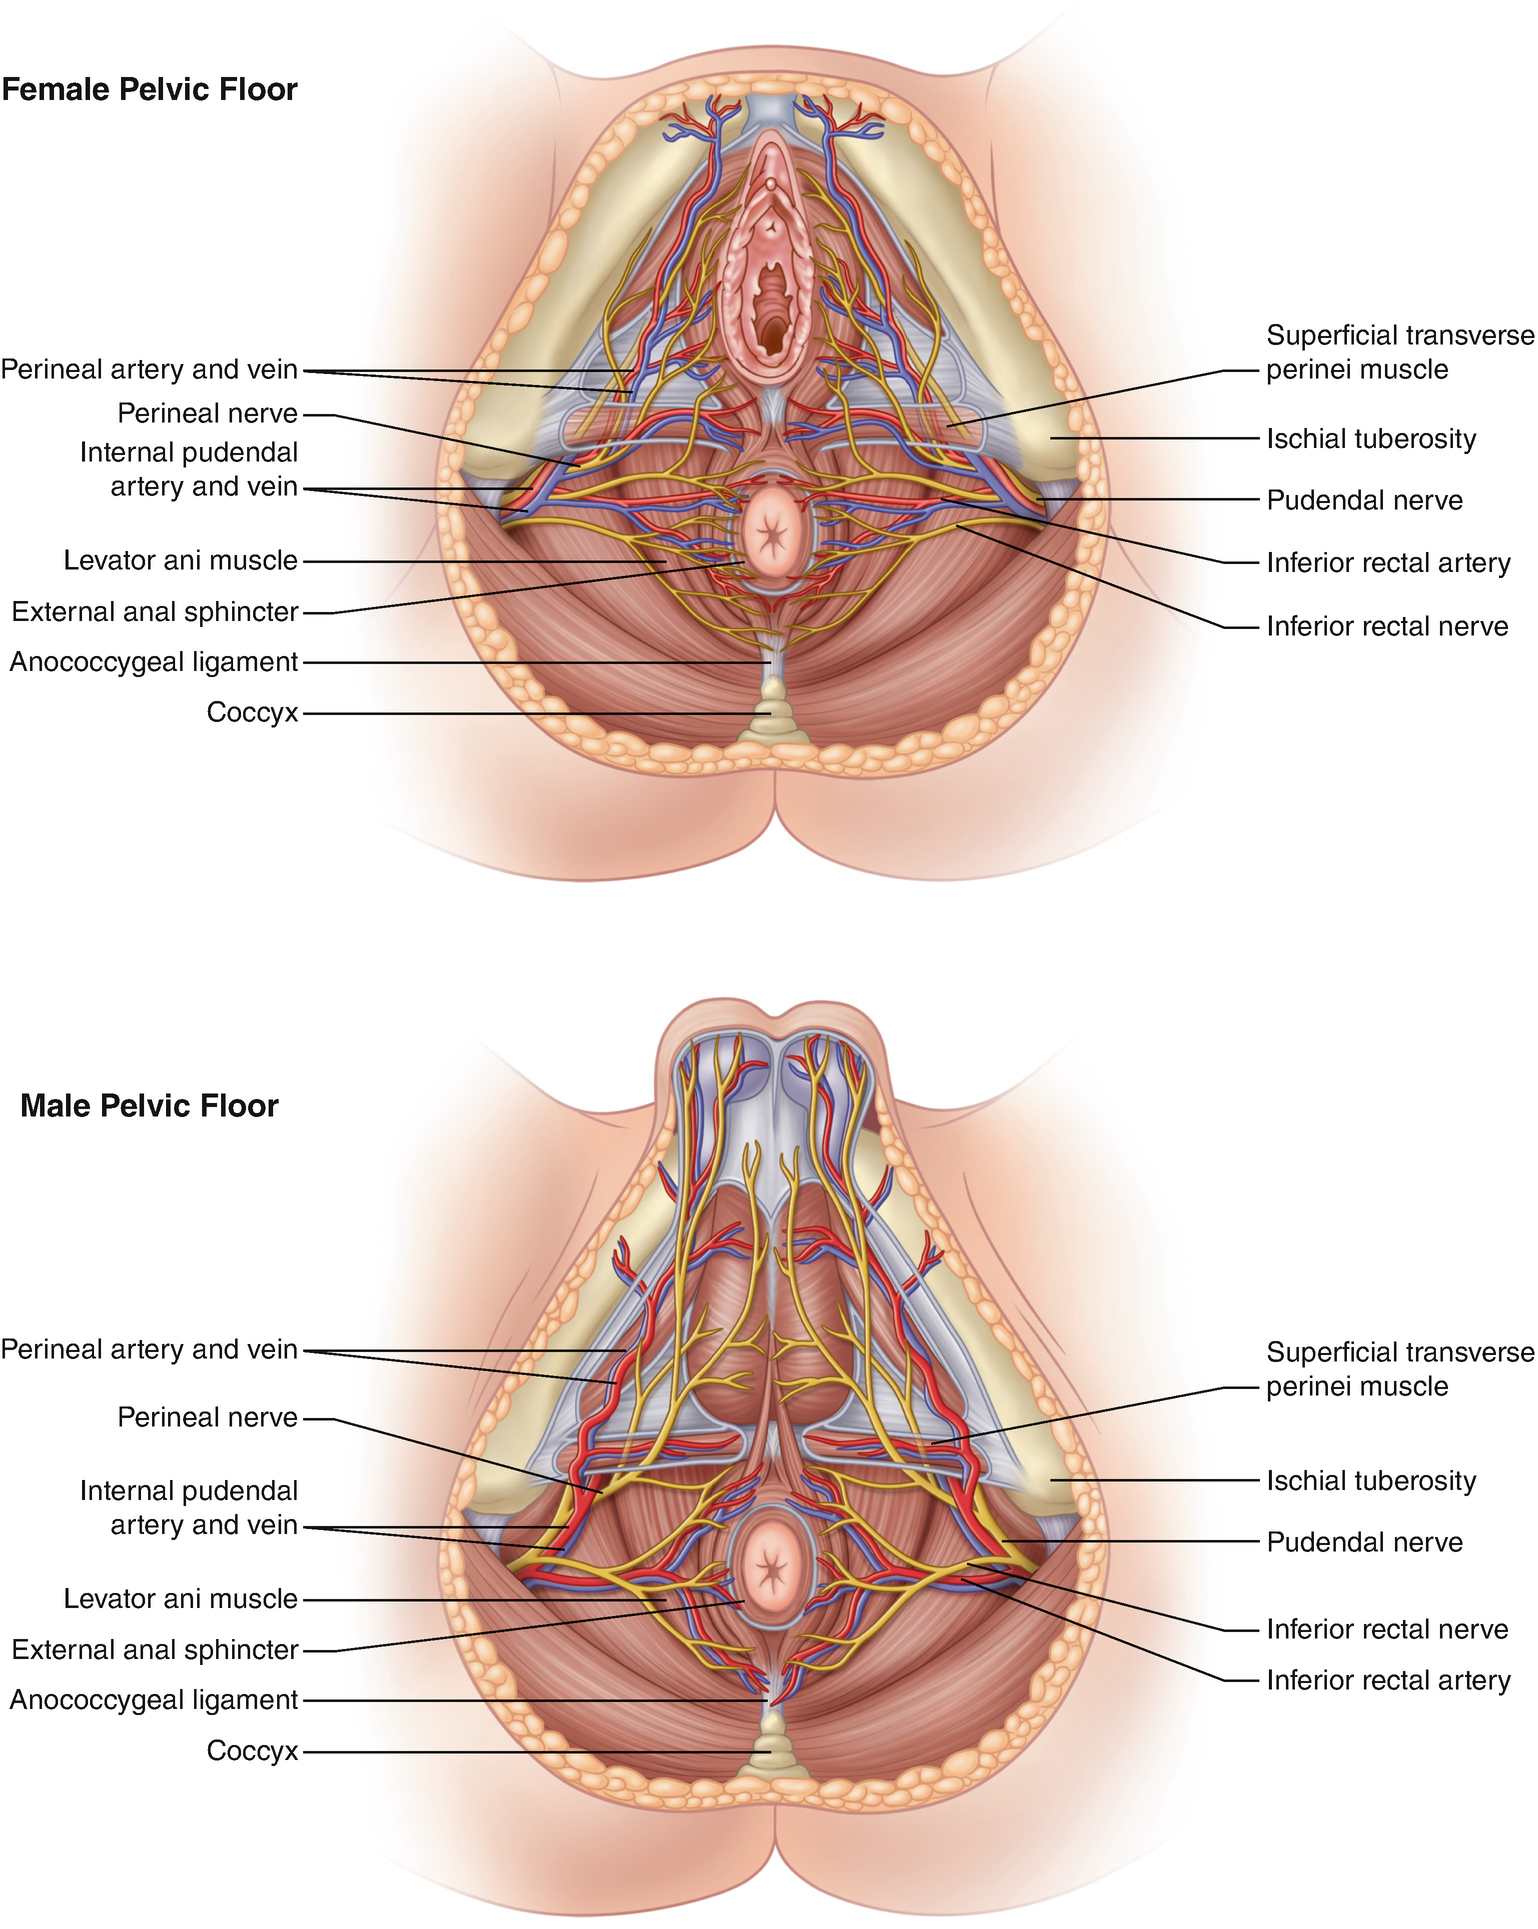 Anatomy And Embryology Of The Colon Rectum Anus Springerlink Diagram 88 Internal Structure Blood Flow Through Heart Open Image In New Window